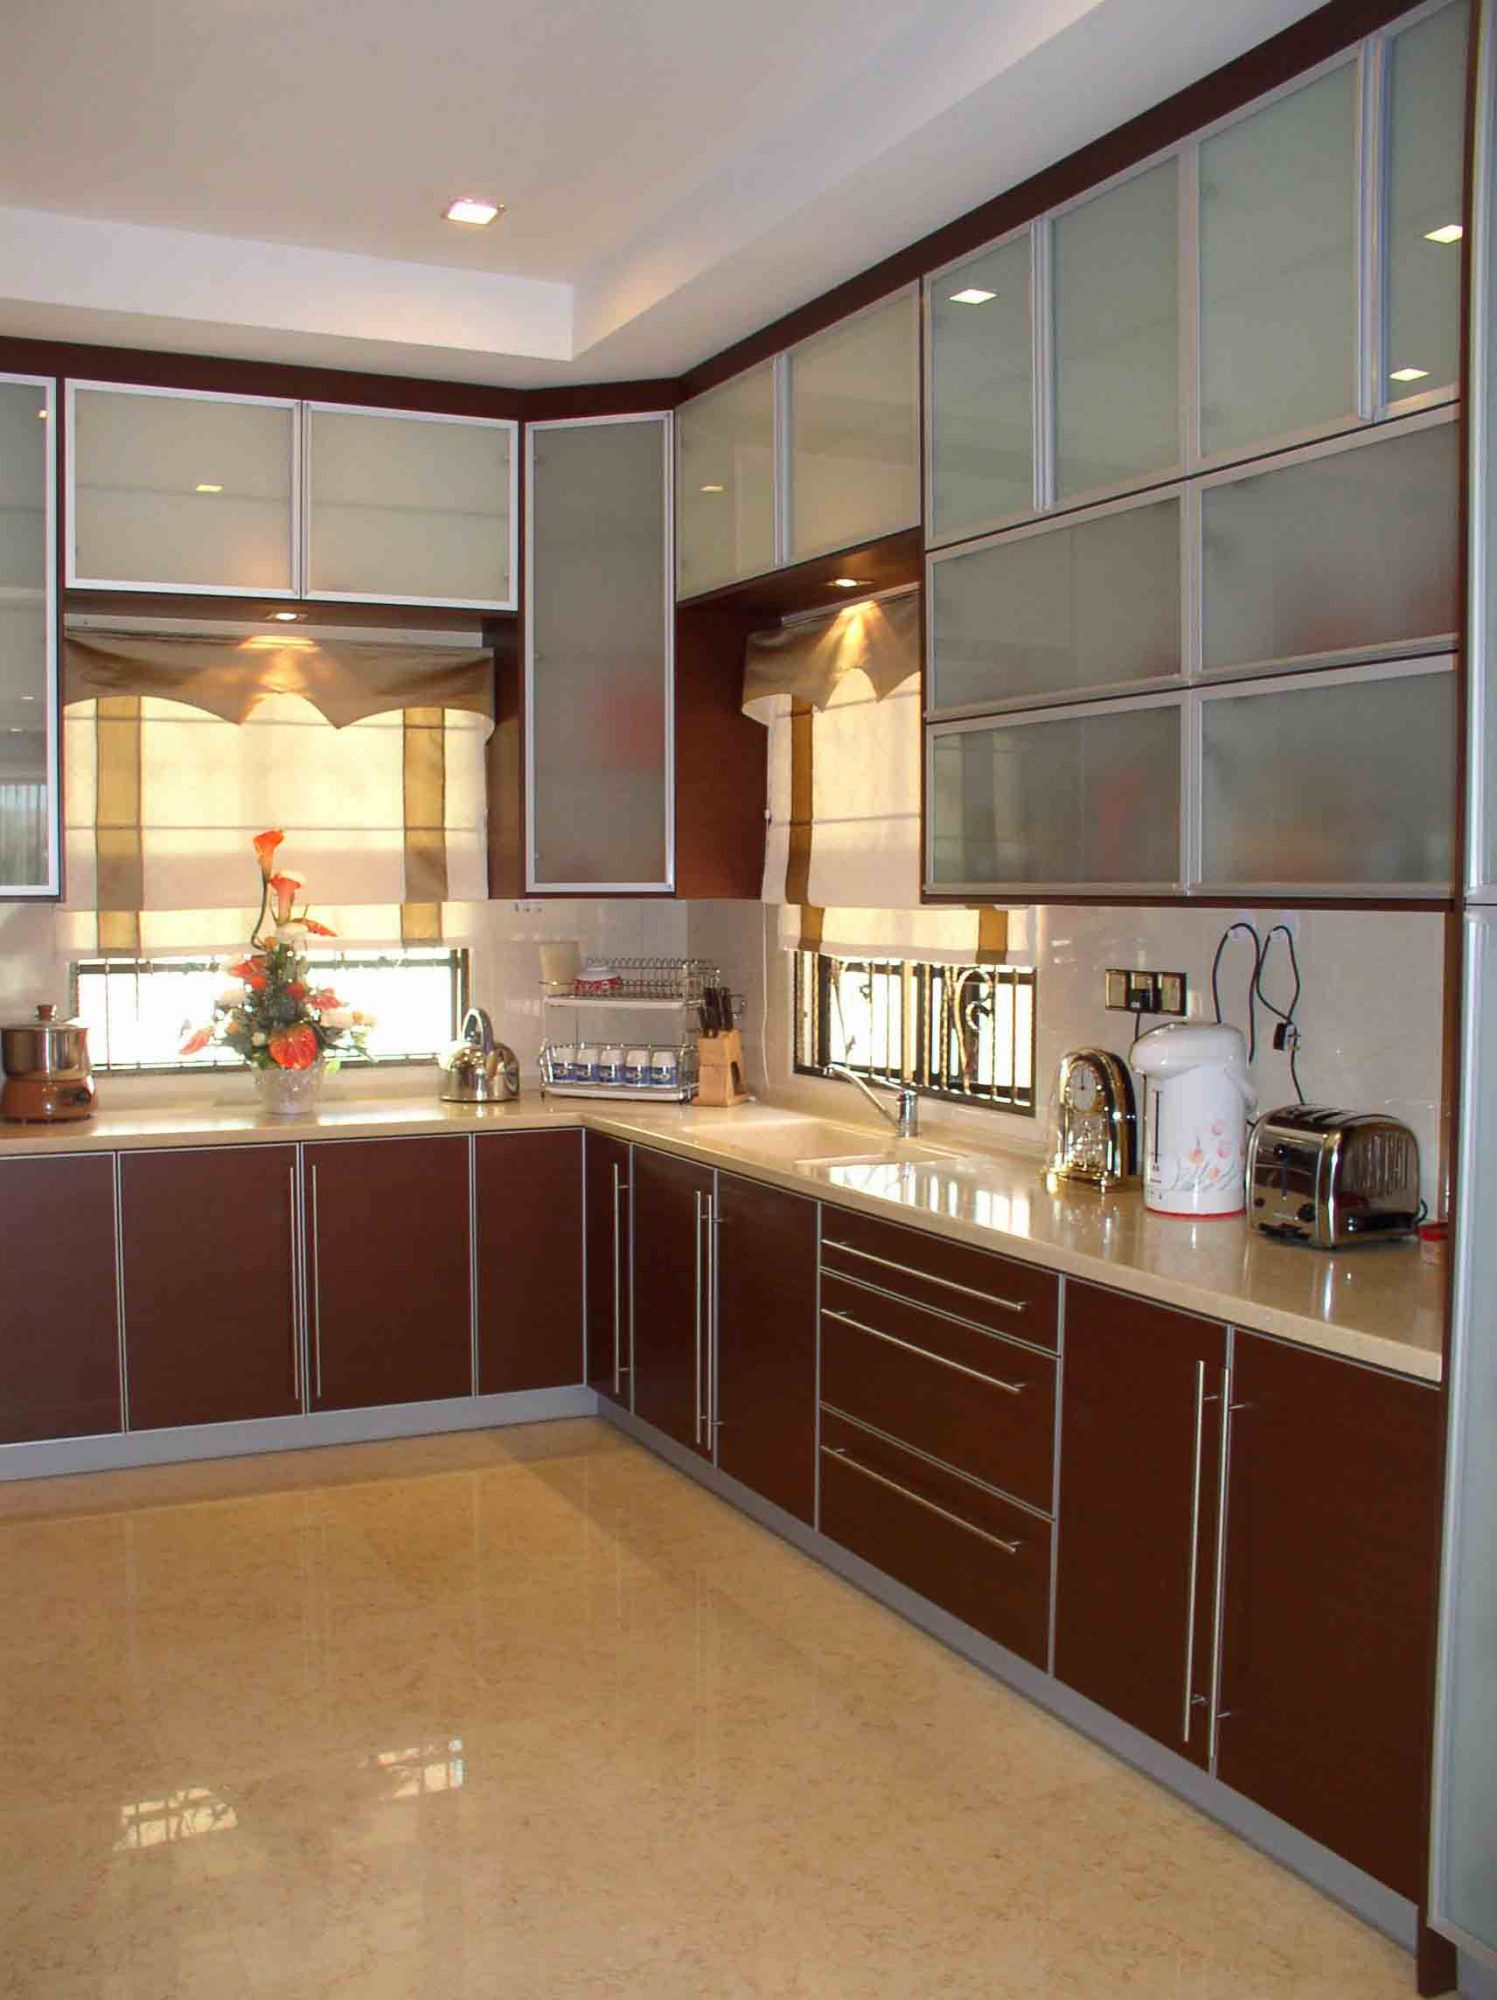 design a kitchen cabinets 20 popular kitchen cabinet designs in malaysia recommend 223